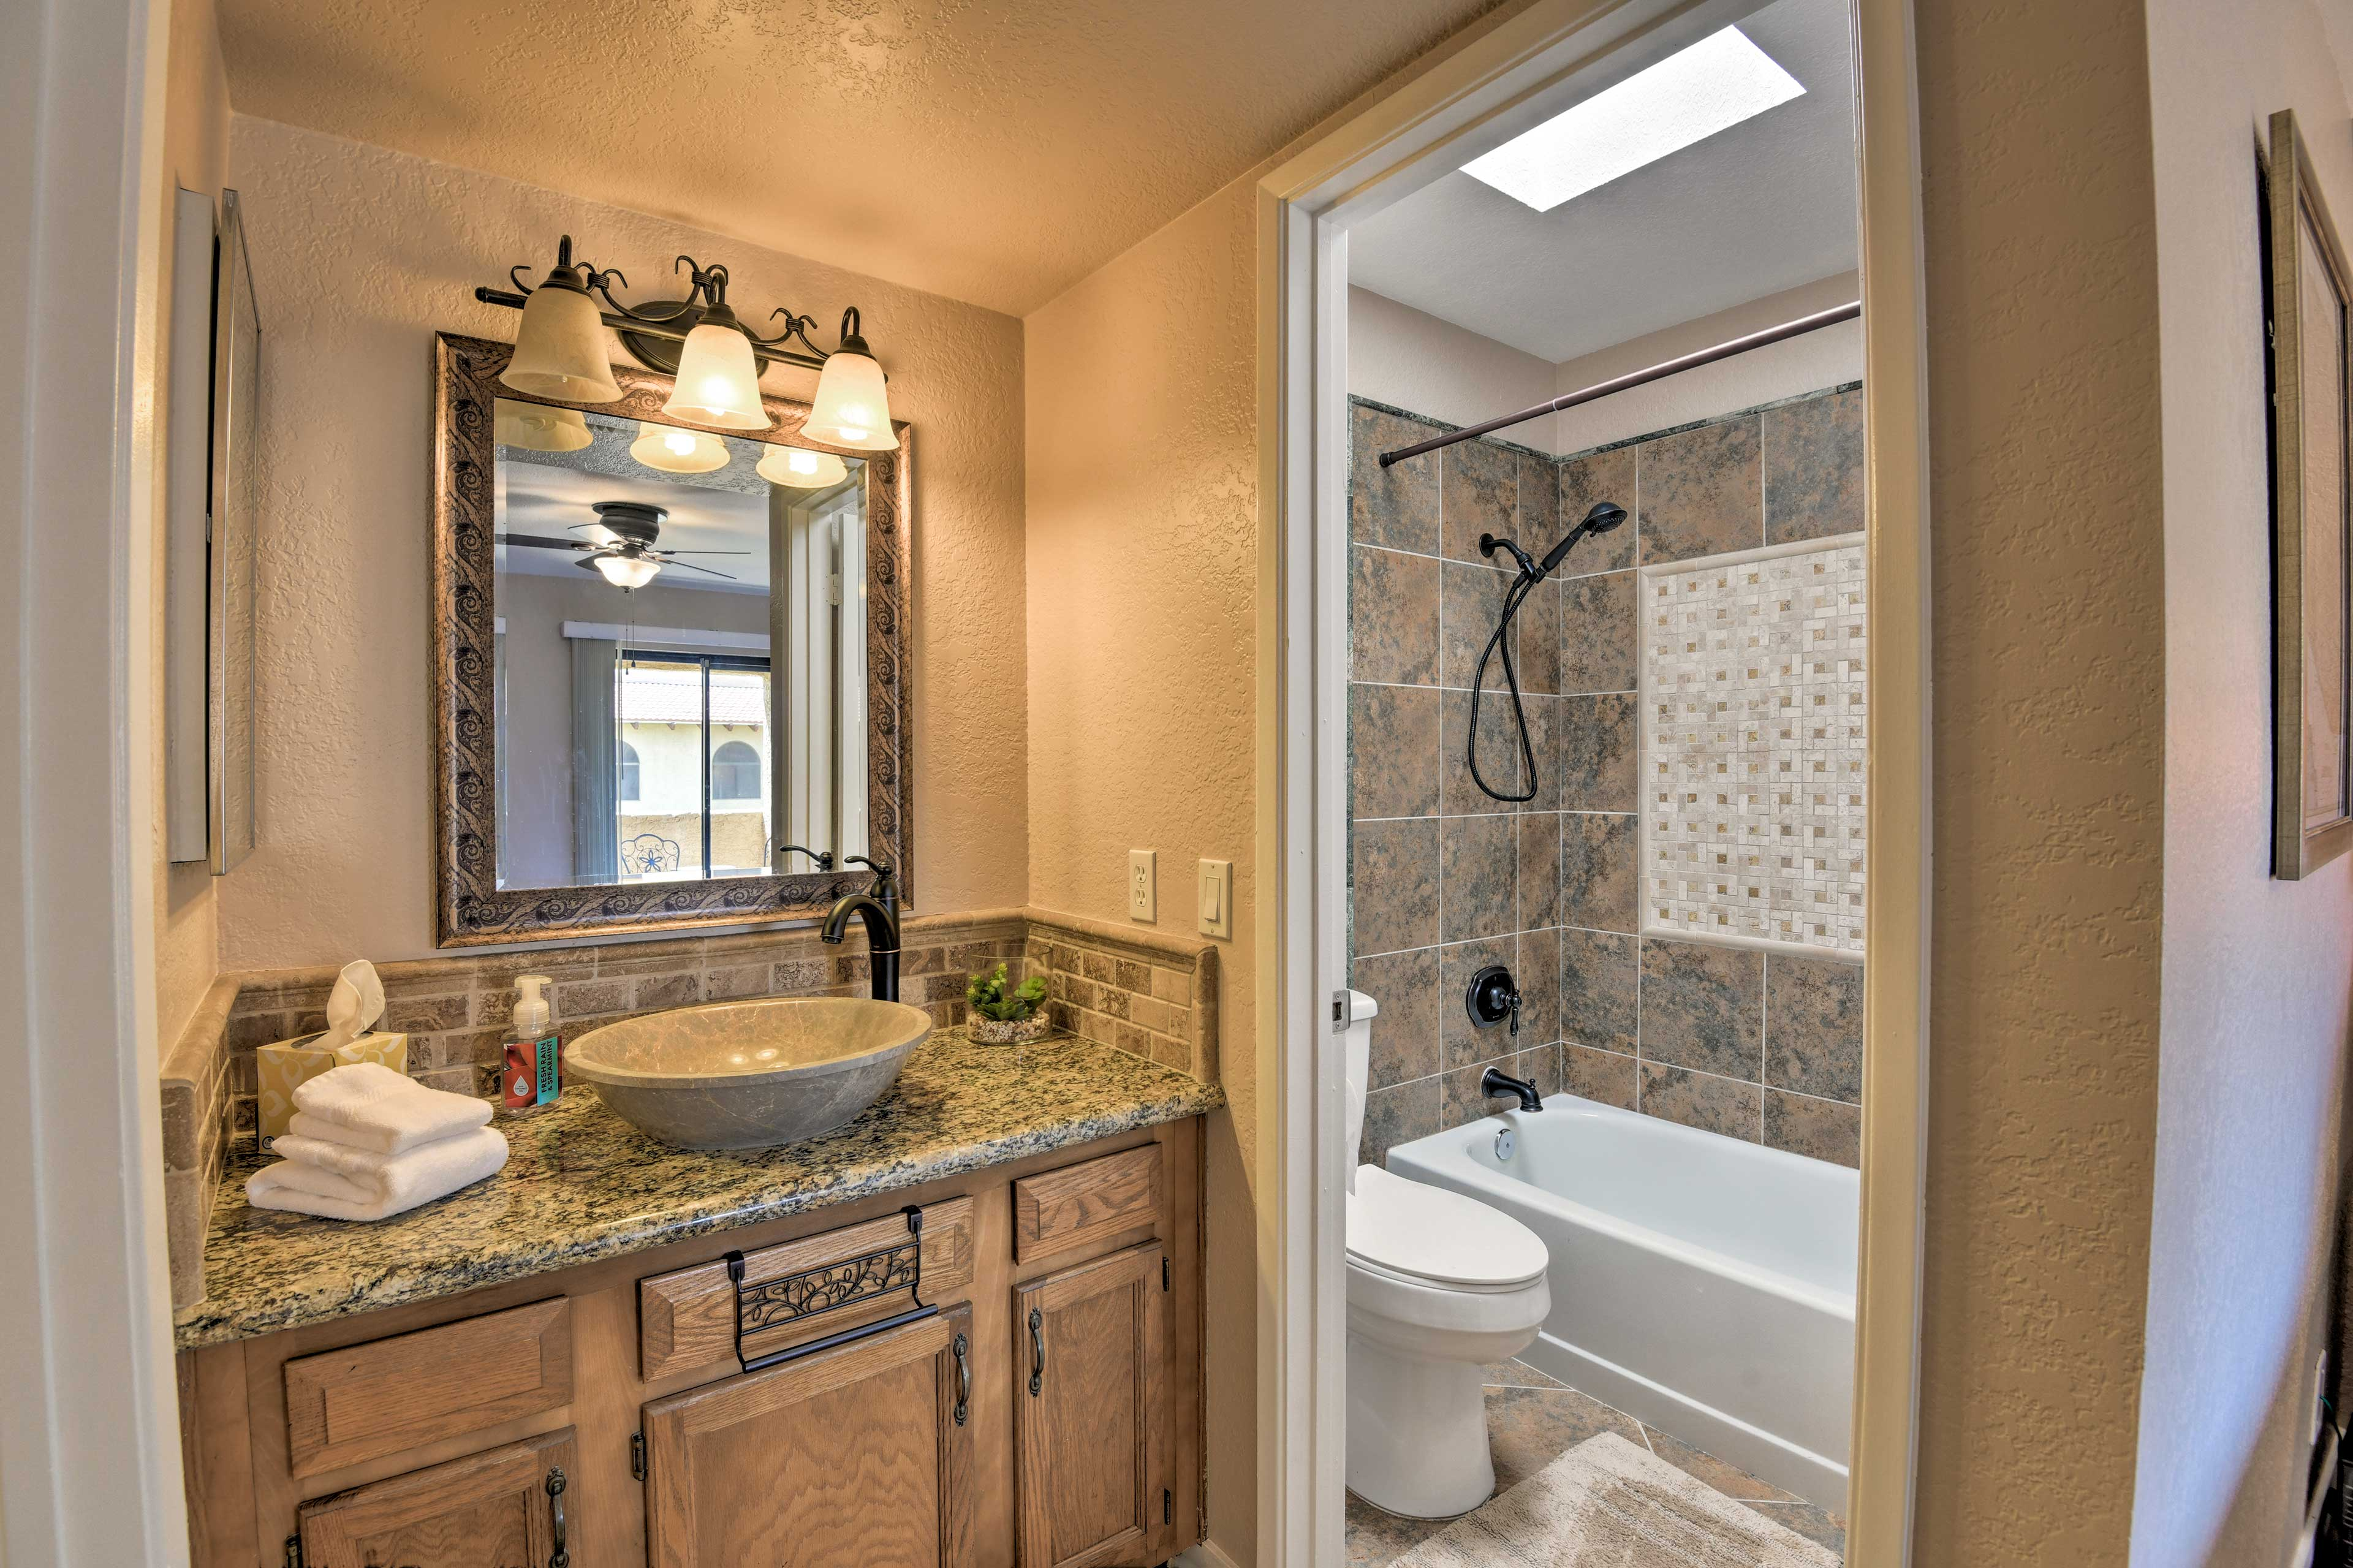 The second master en-suite bathroom also features a shower/tub combo.